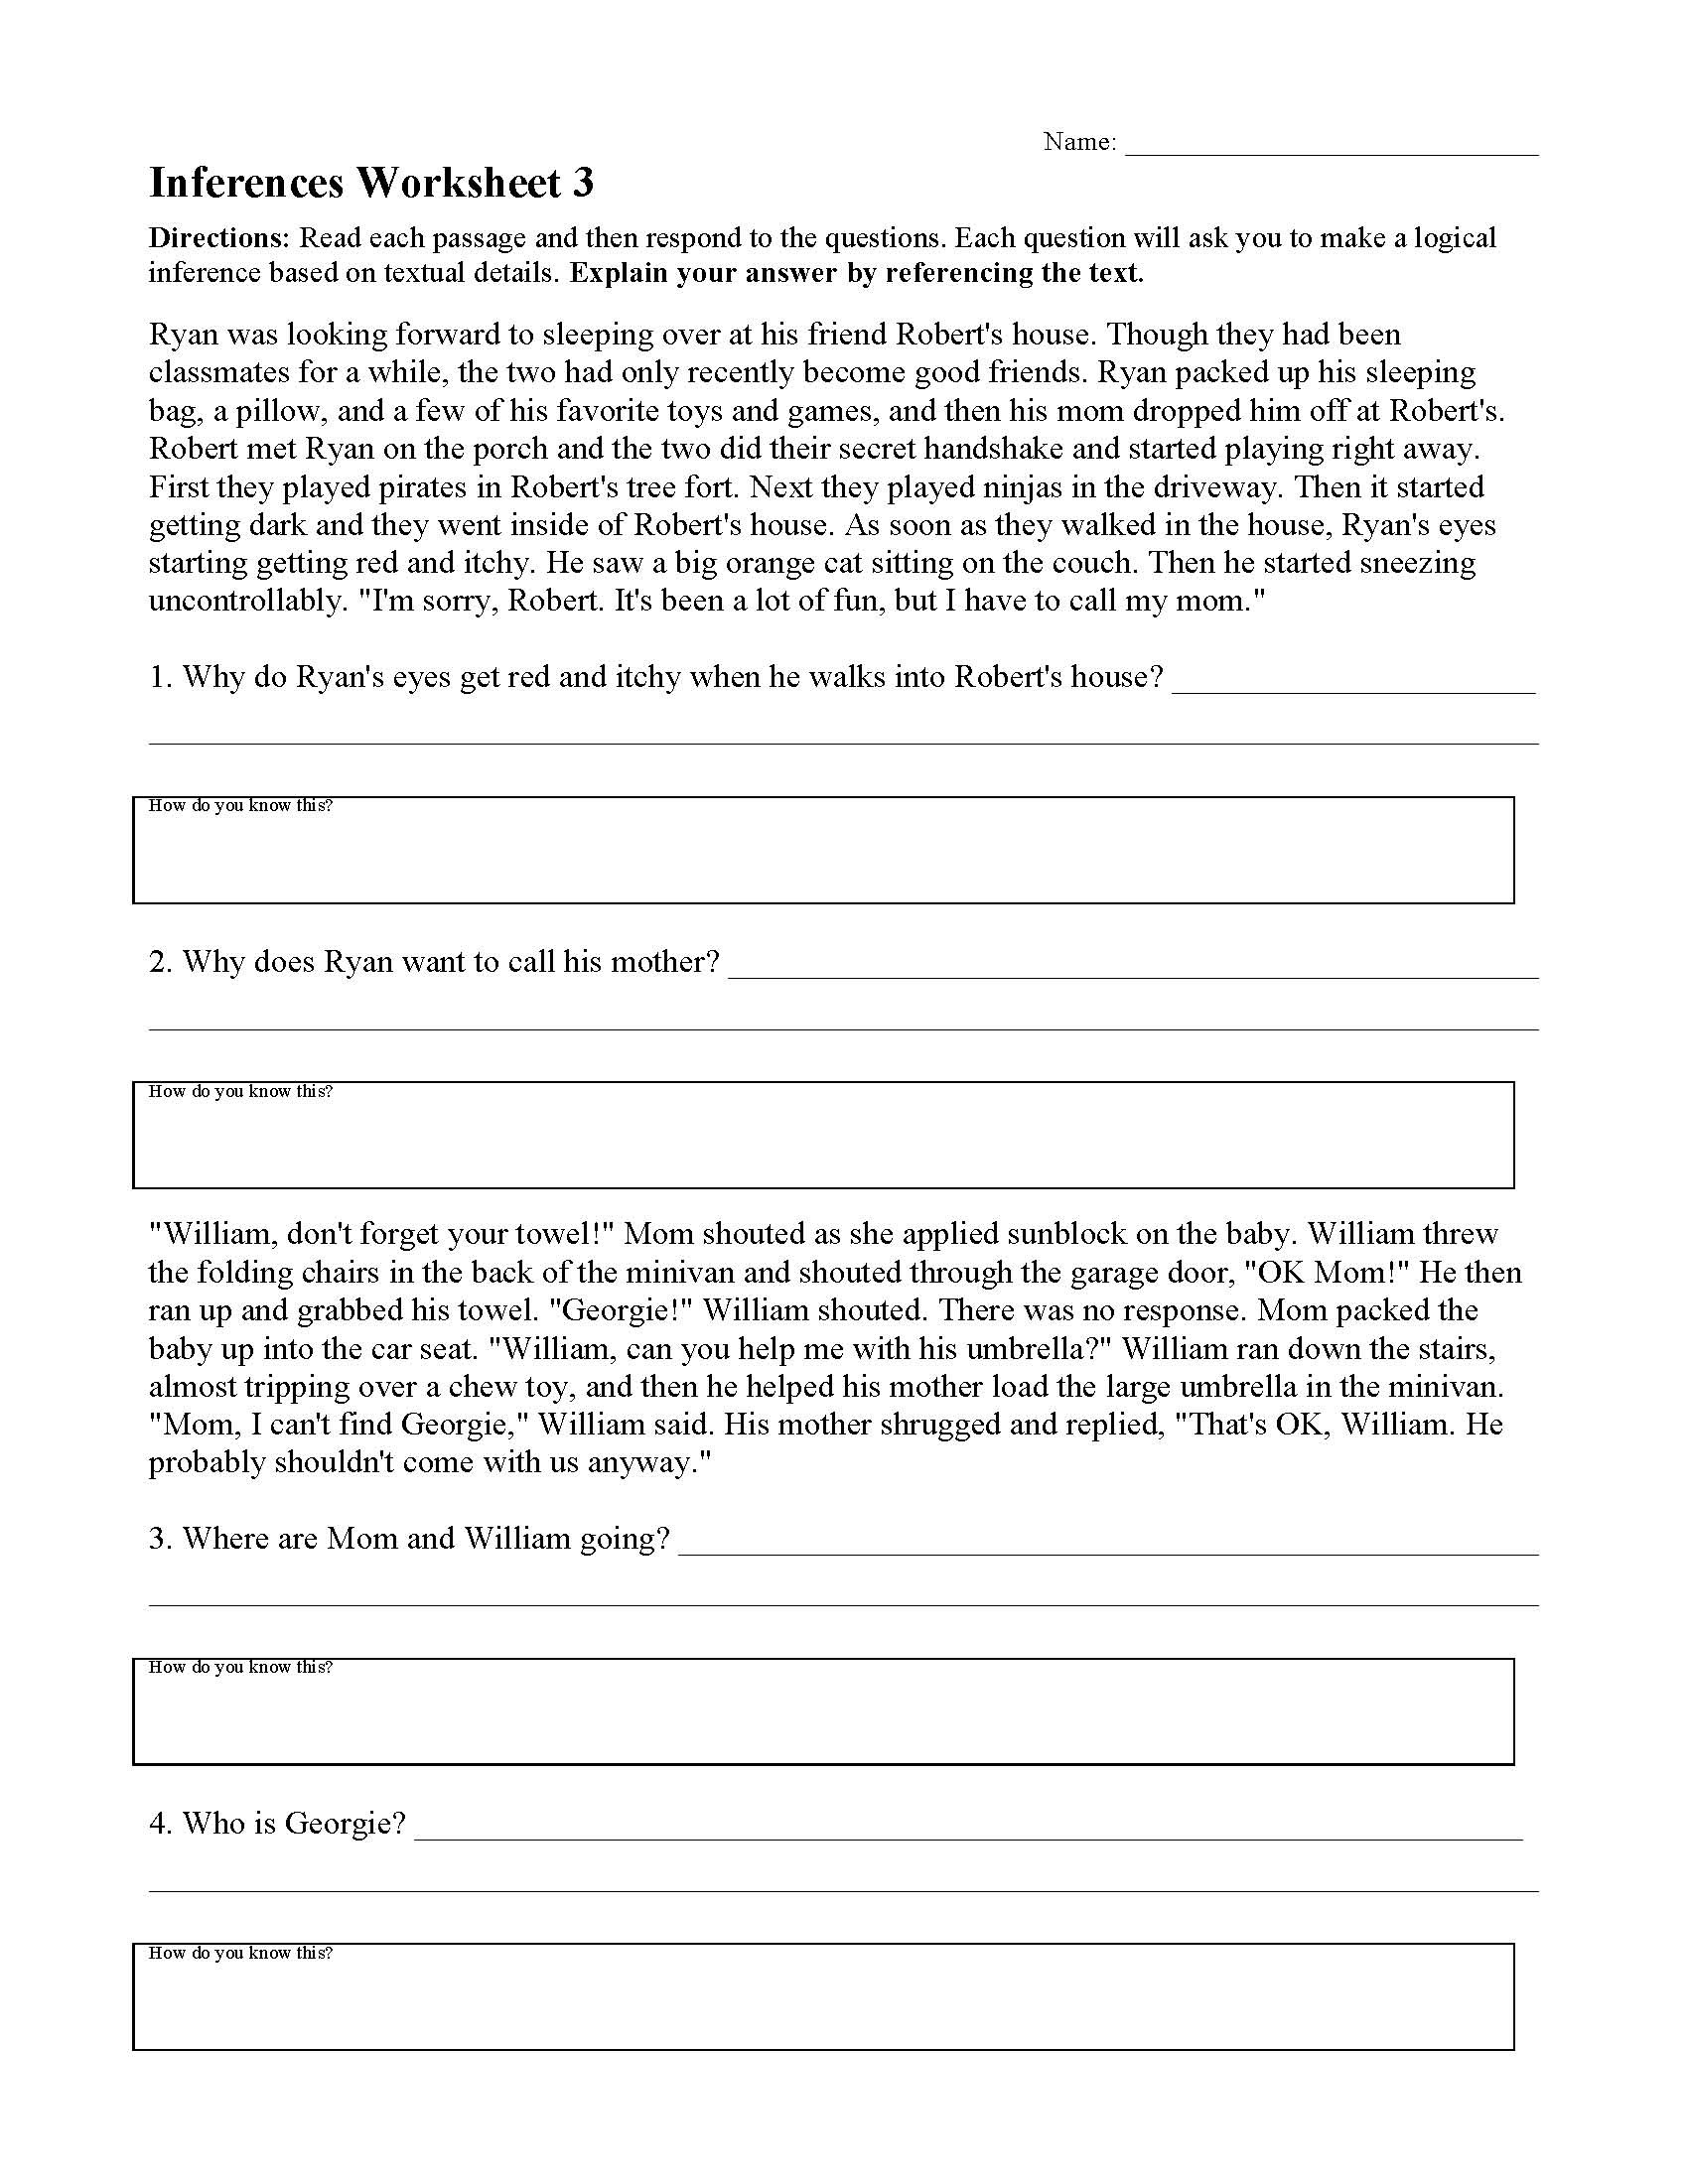 4th Grade Inference Worksheets Inferences Worksheets